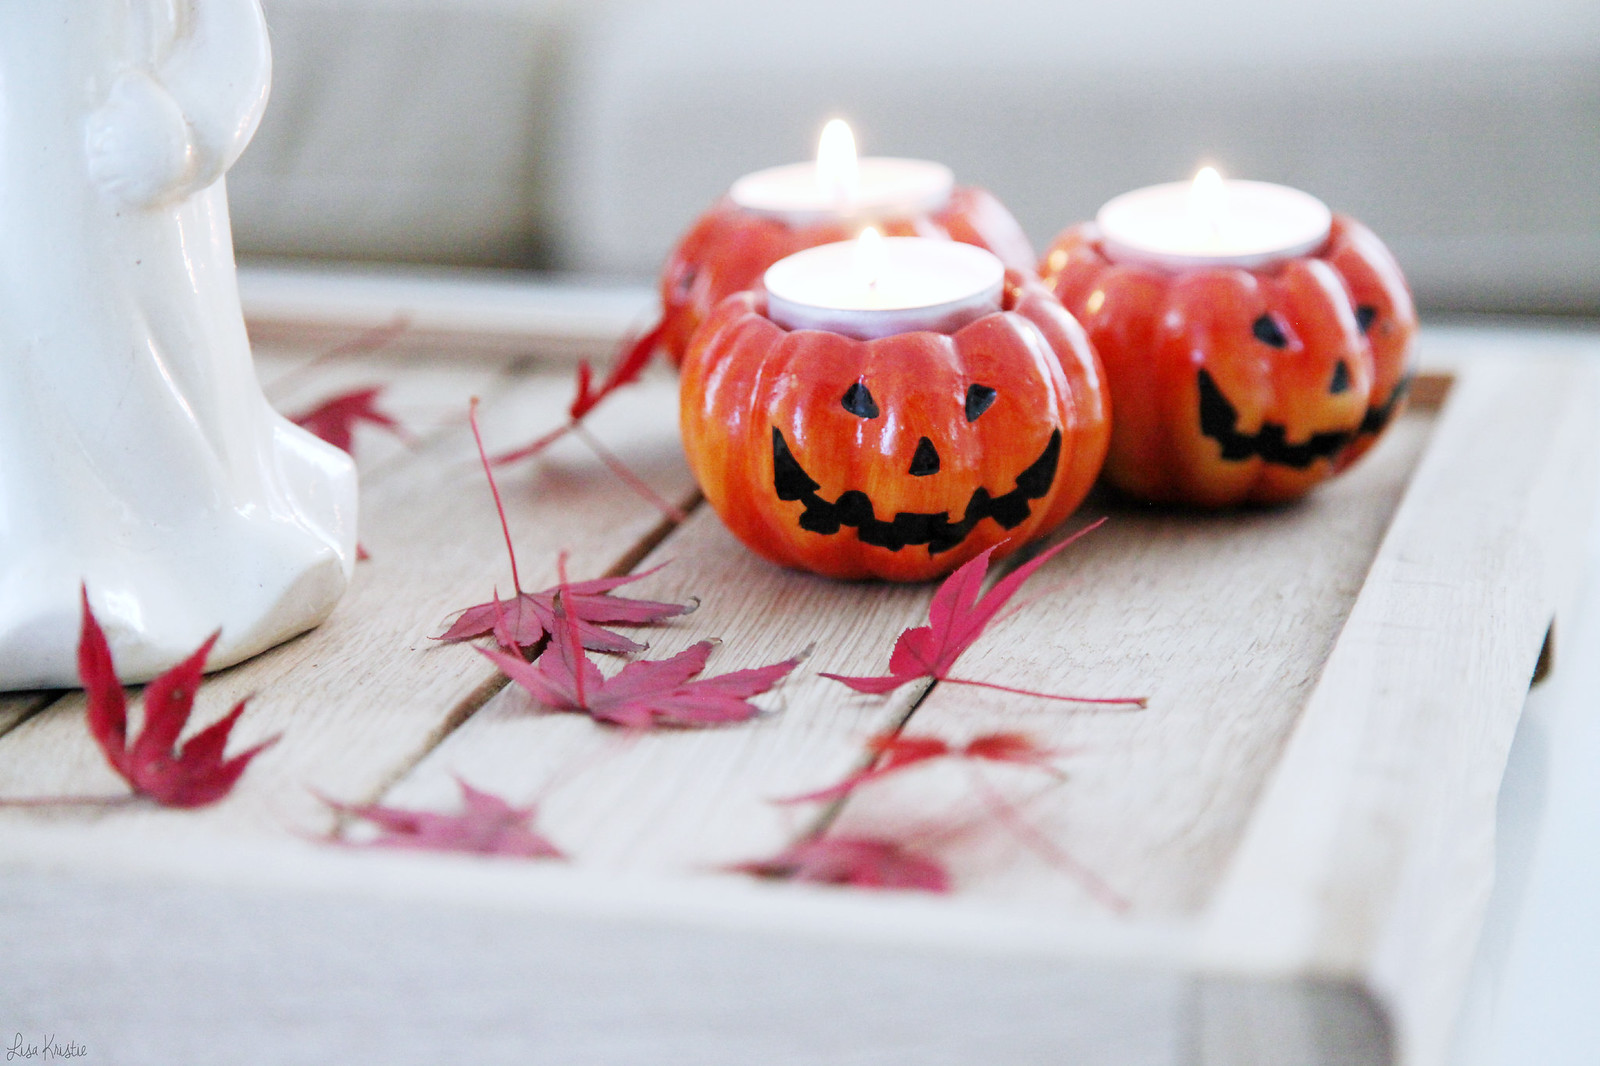 Halloween pumpkin tea light holders candles tray real leaves decoration home interior fall thanksgiving house decor